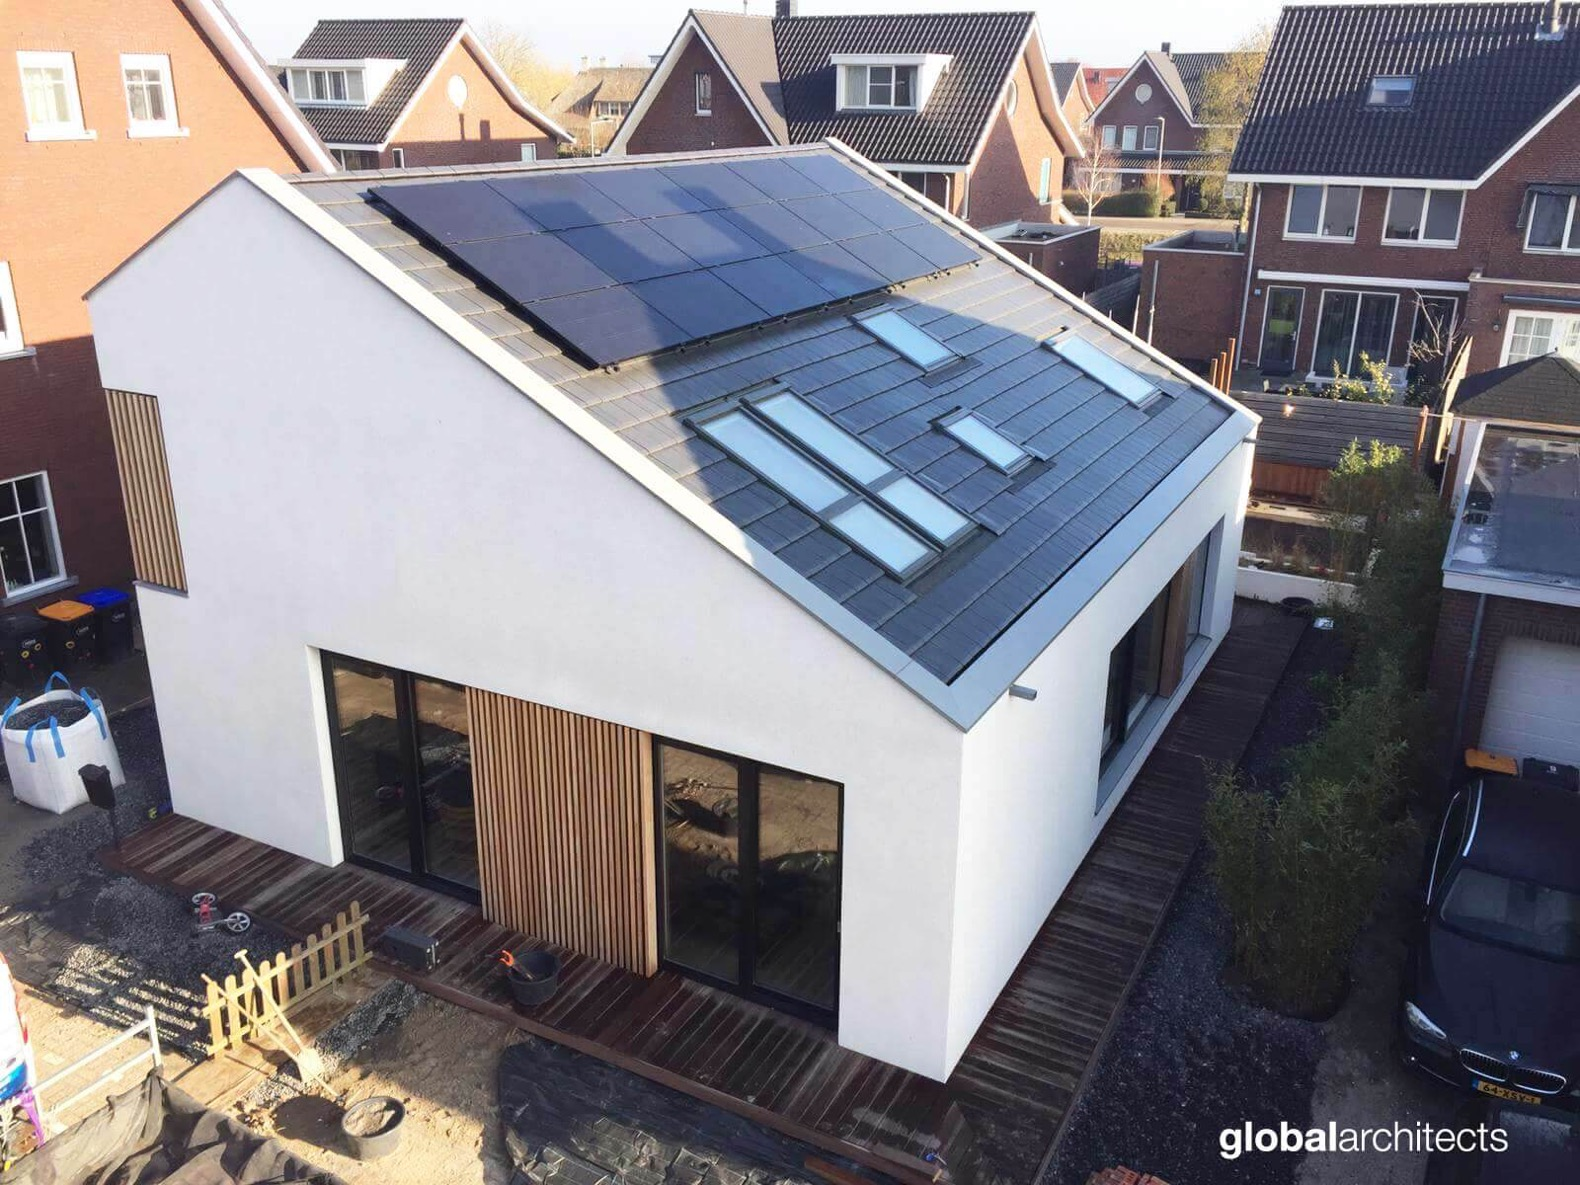 A Dutch village inspired the design of this solar-powered home